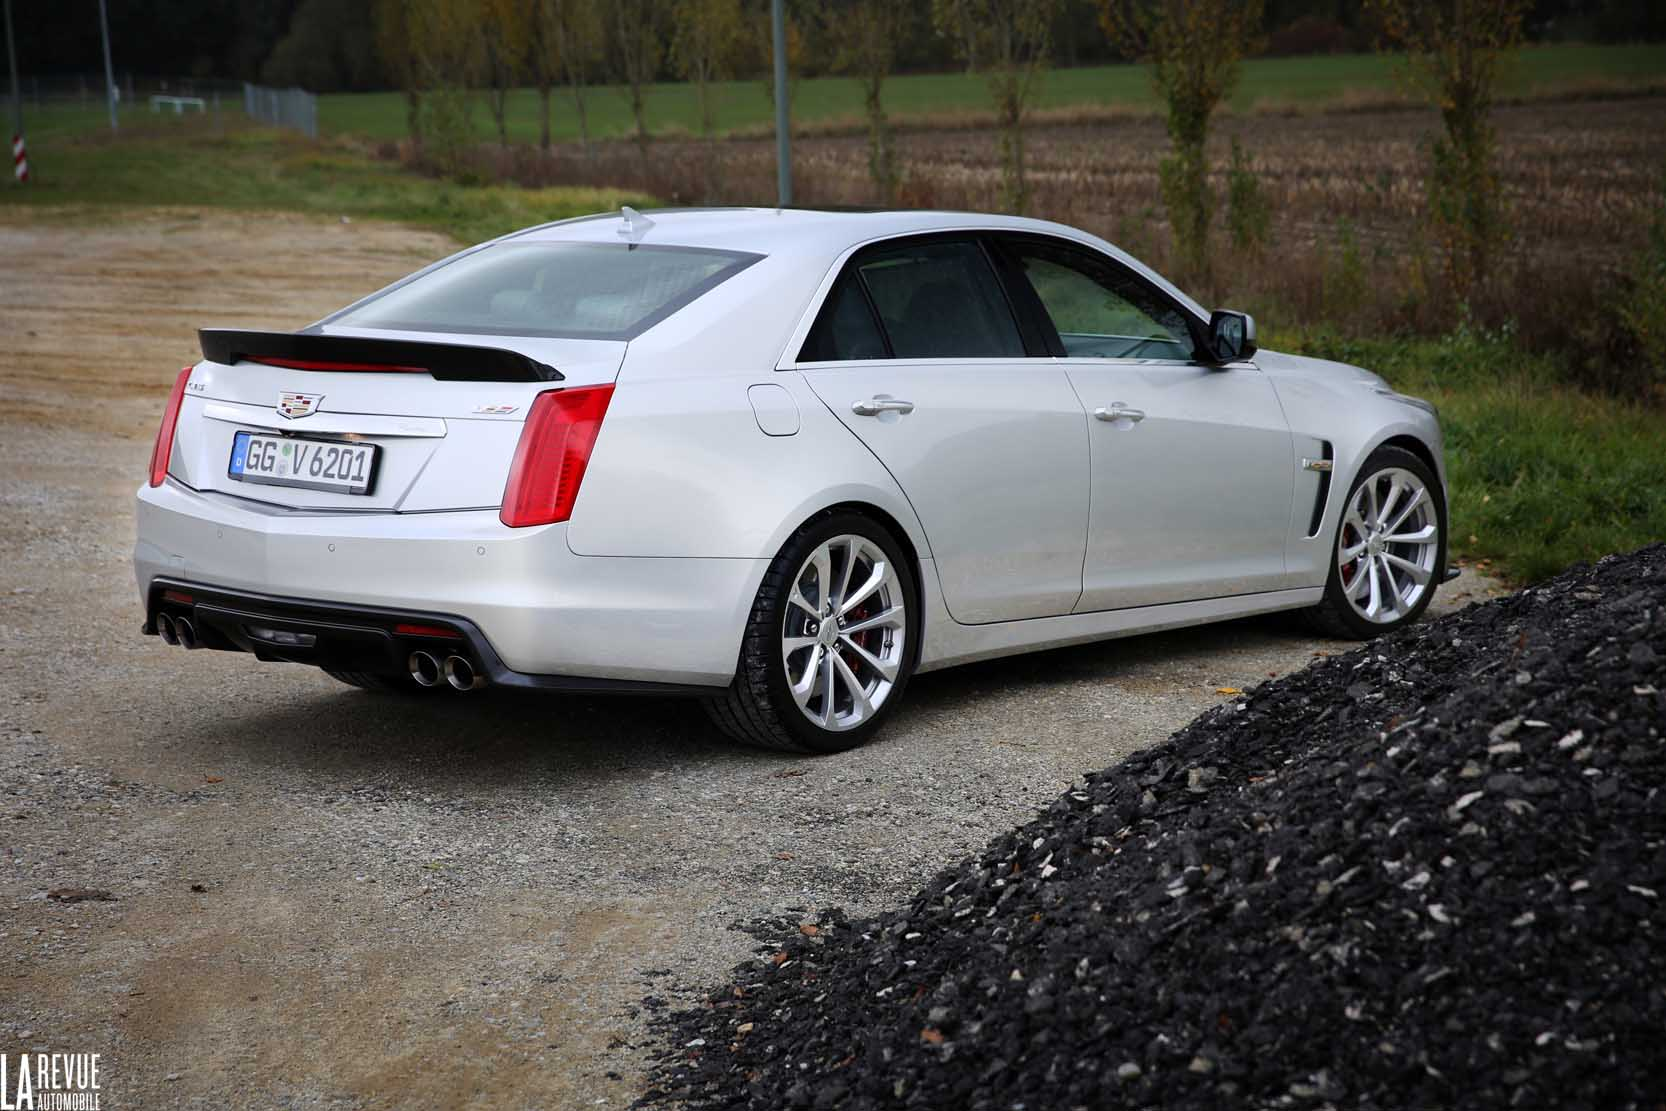 Exterieur_Cadillac-CTS-V-2015_20